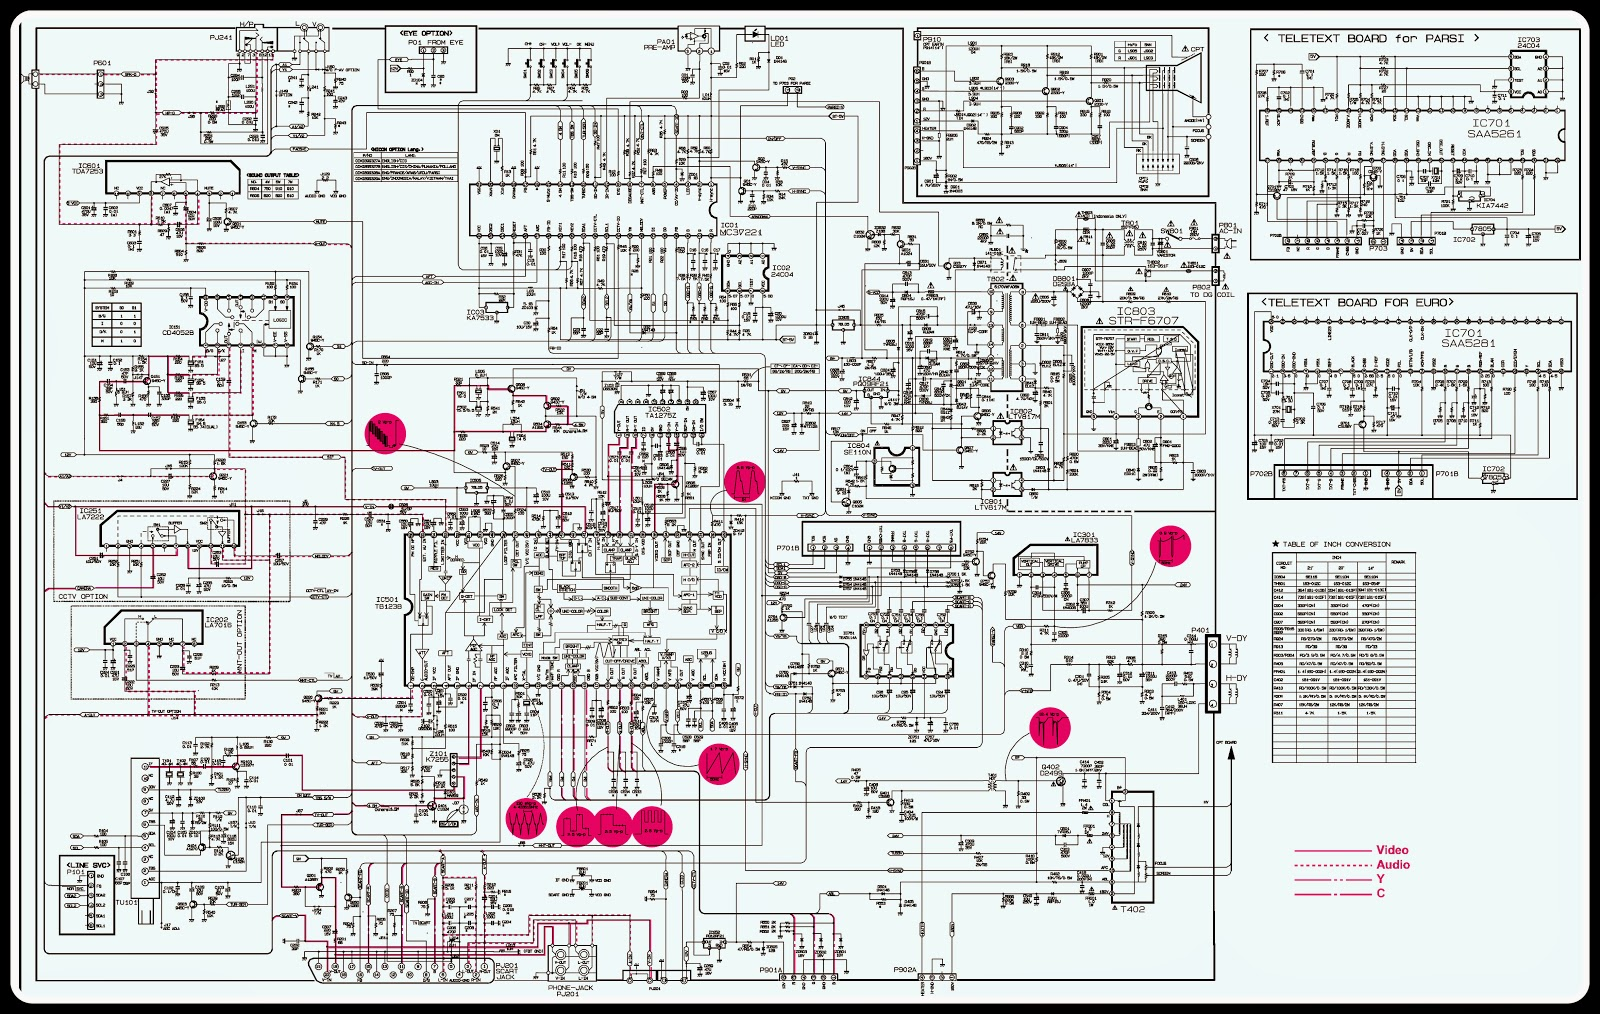 Refdetail besides Lg Tv Circuit Diagram as well Staying In Control Electric Brake Controllers besides 375431423 together with Cell Diagram. on basic electrical schematic diagrams